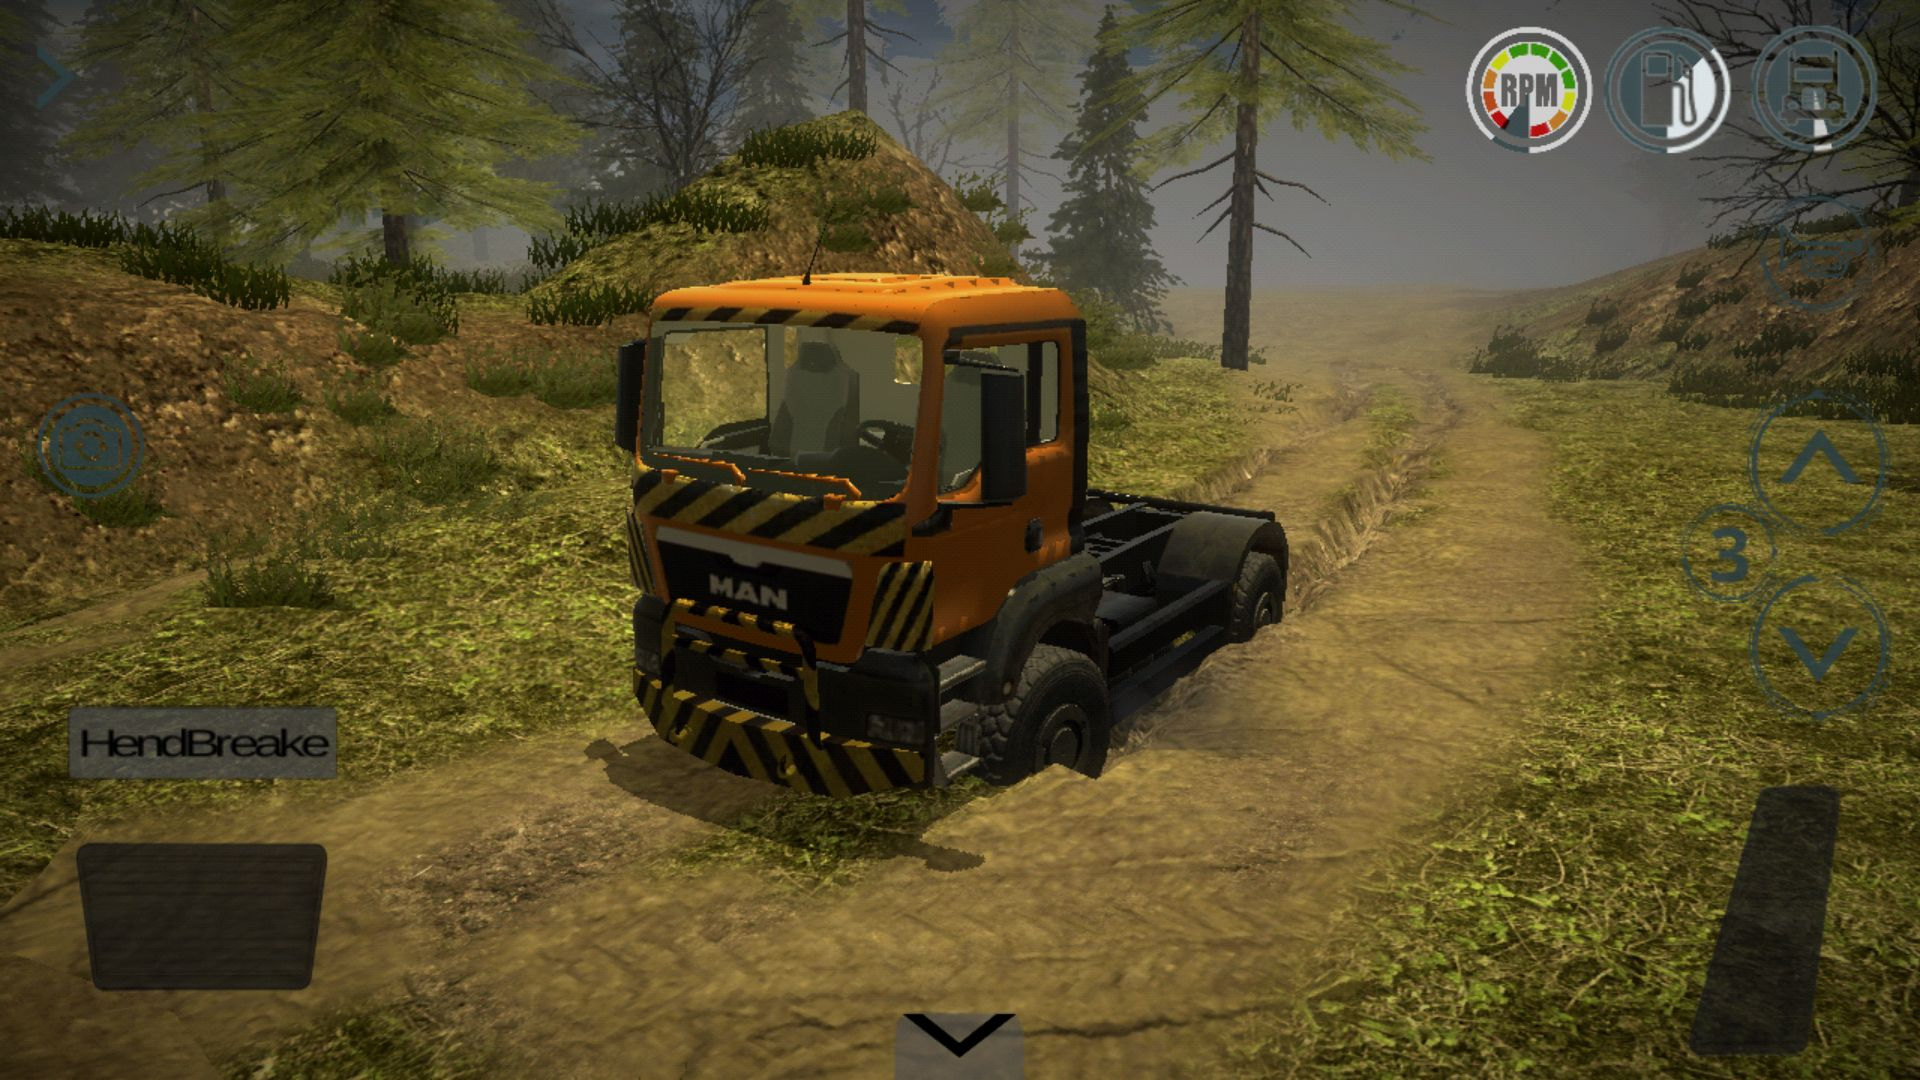 Offroad online (Reduced Transmission HD 2020 RTHD) 游戏截图5